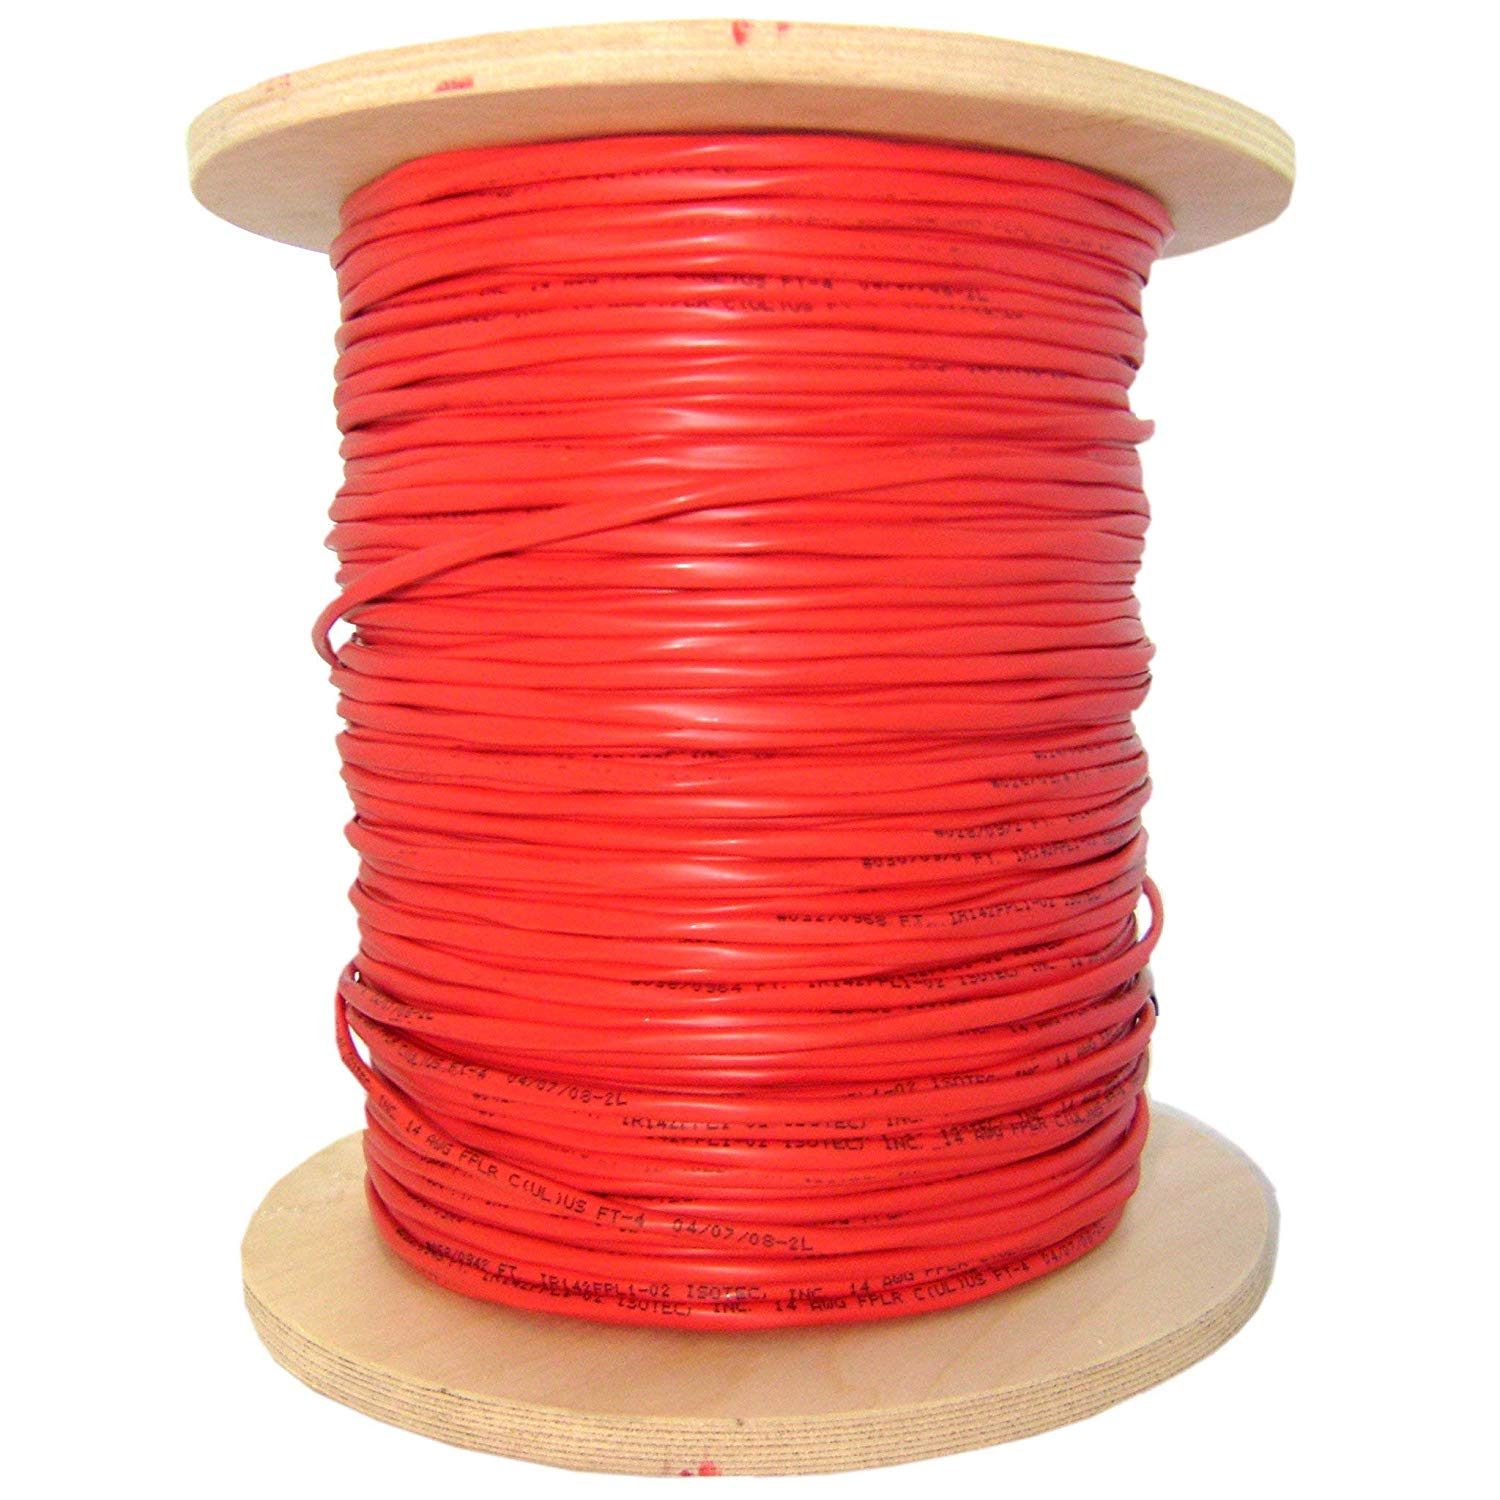 Black Singlemode 9//125 QualConnectTM 6 Strands Fiber Indoor//Outdoor Fiber Optic Cable Plenum Rated Spool 1000ft